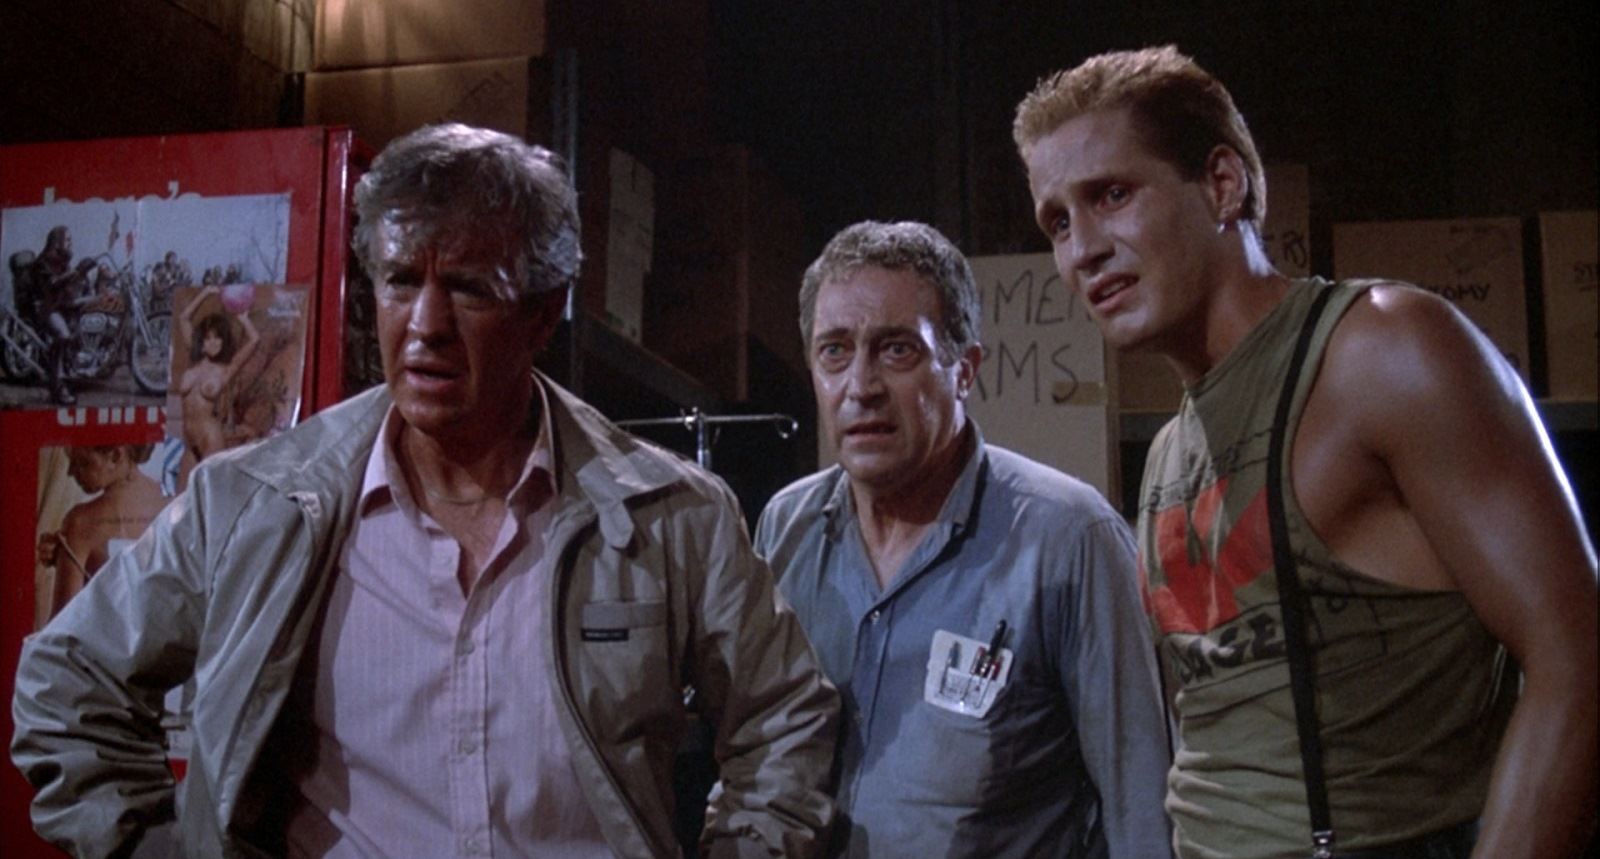 (l to r) Morgue attendants Clu Gulager, James Karen and Thom Matthews in Return of the Living Dead (1985)